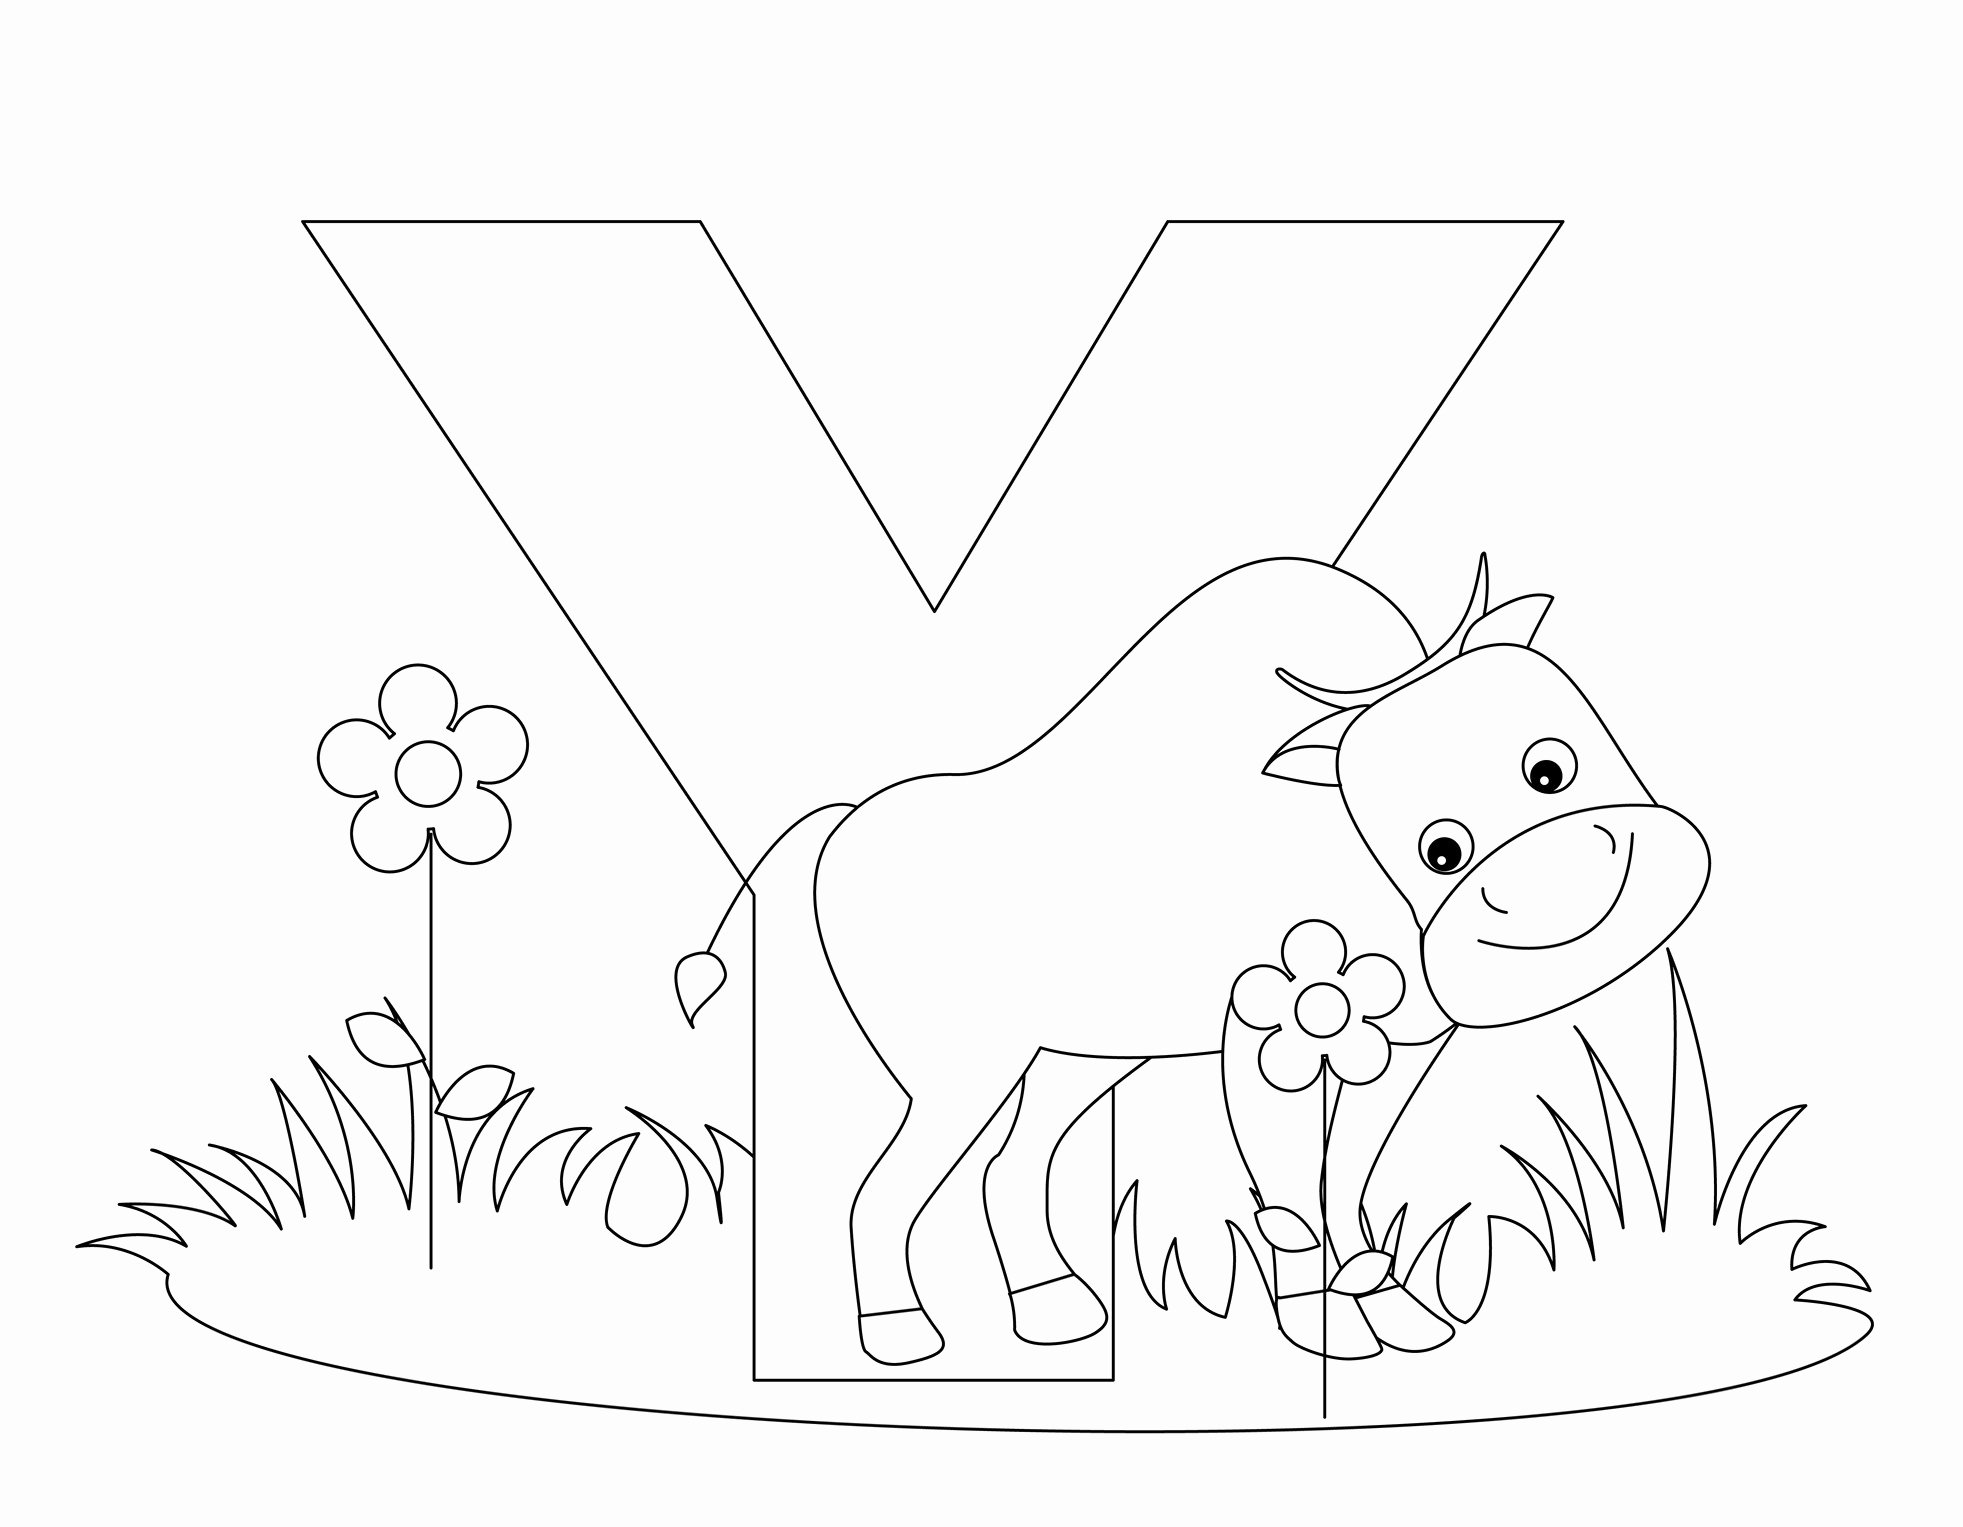 Alphabet Letters to Print Free Luxury Free Printable Alphabet Coloring Pages for Kids Best